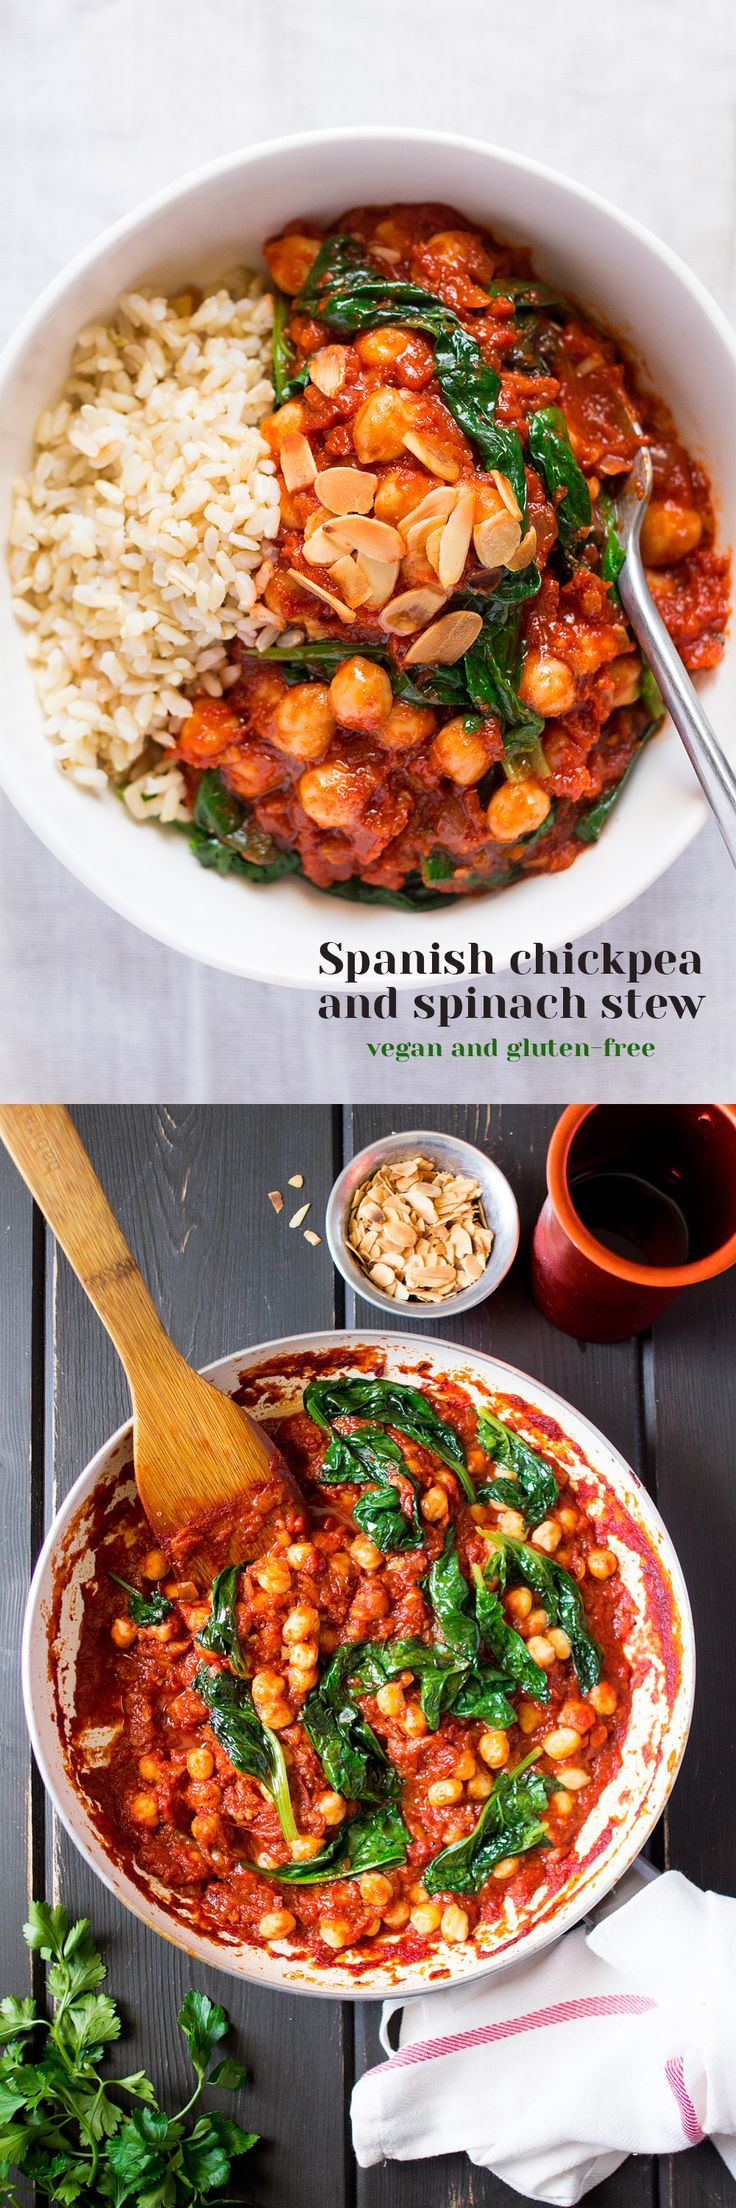 Spanish spinach and chickpea stew